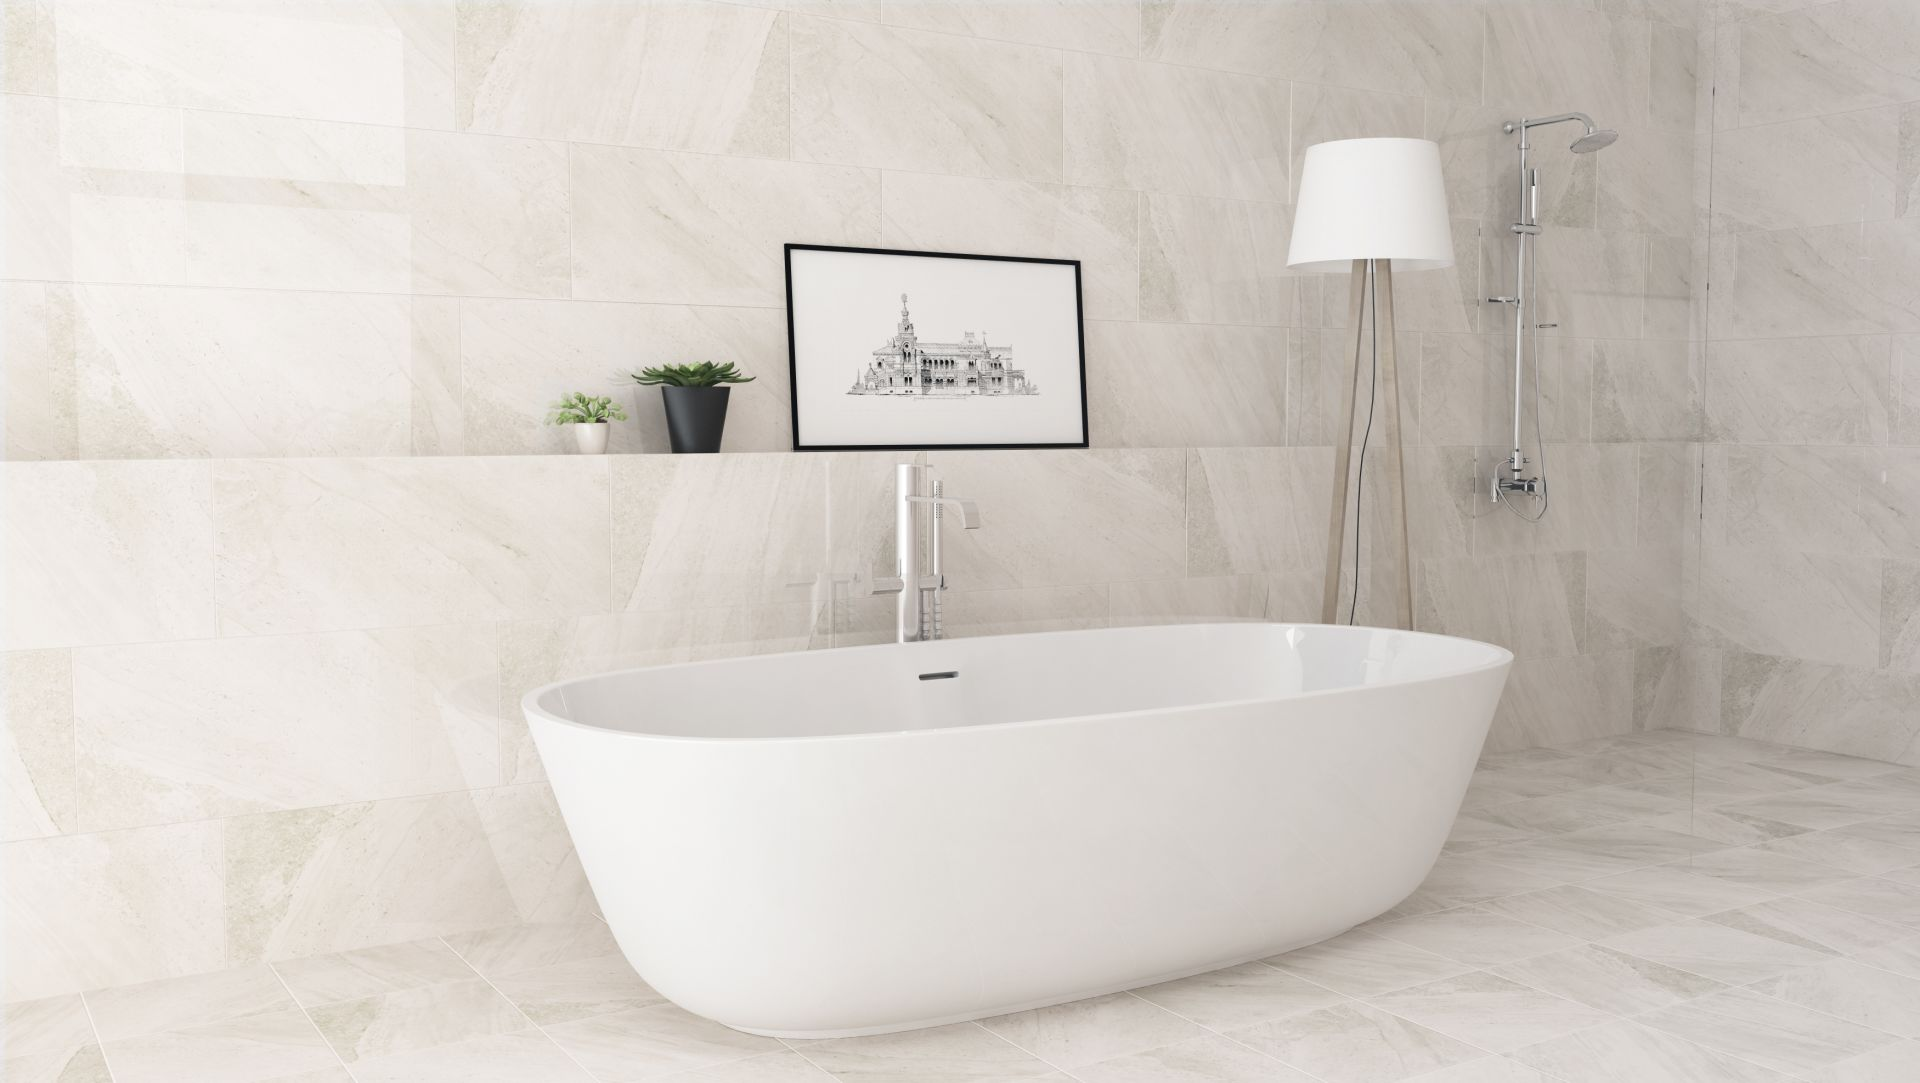 How to Tile a Bathroom - Beaumont Tiles